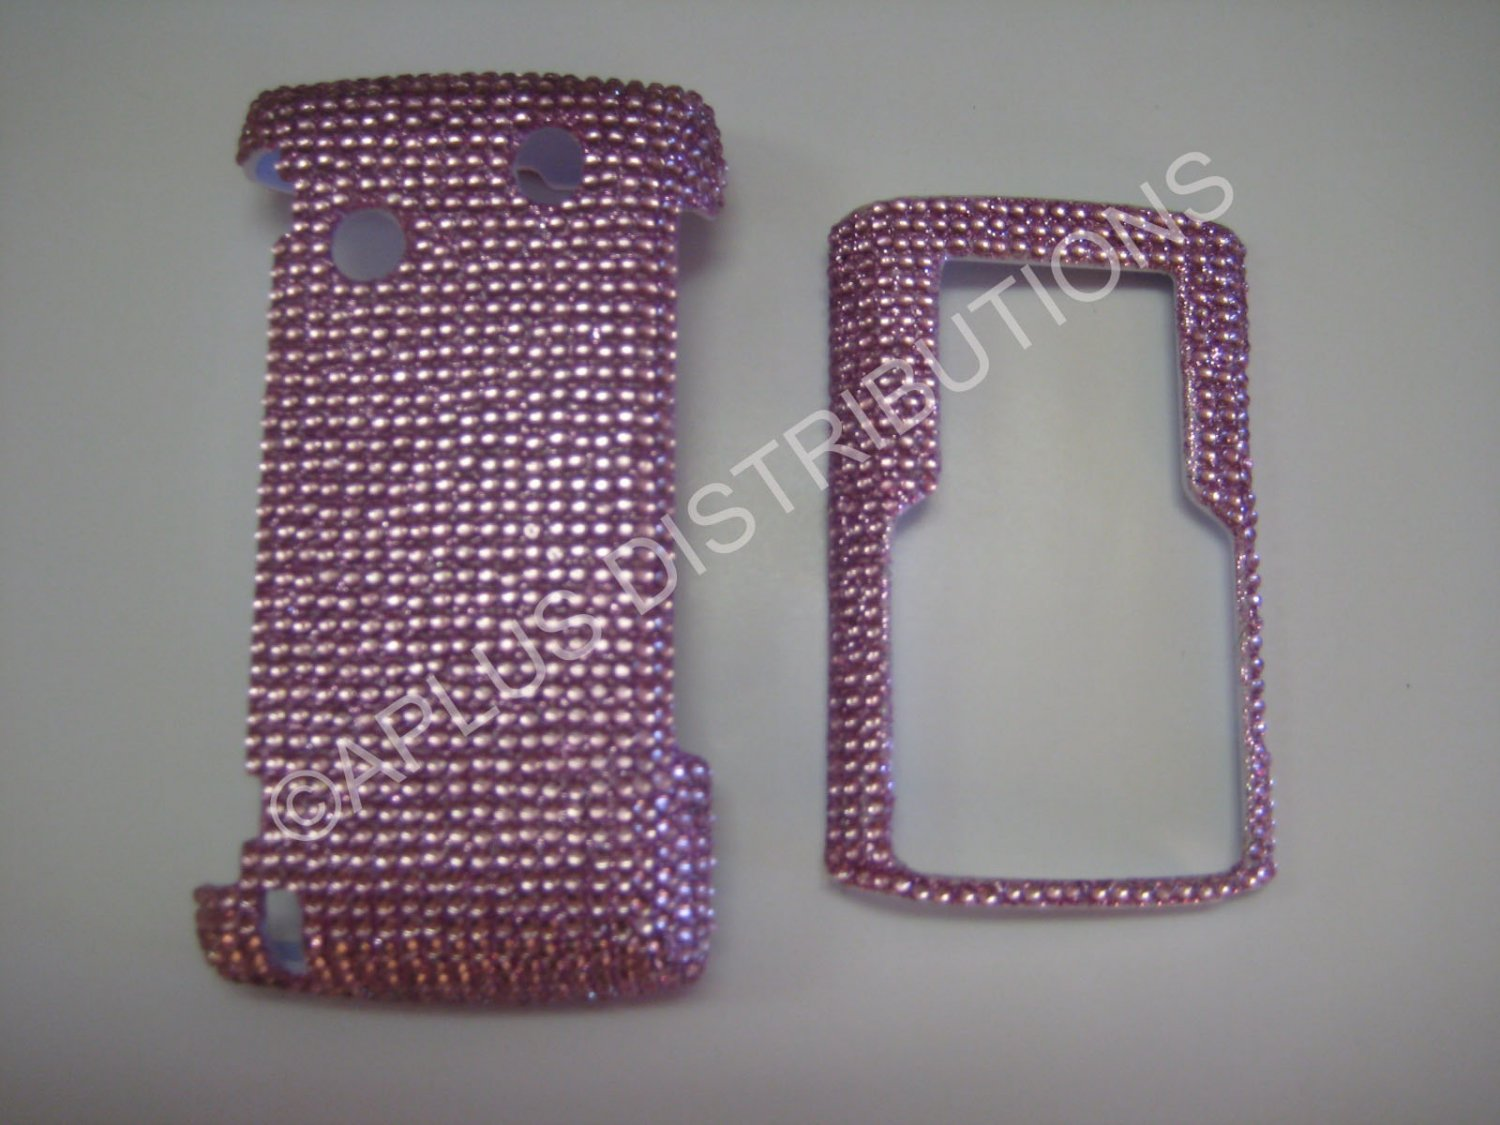 New Pink Solid Design Bling Diamond Case For Samsung Comeback T559 - (0009)